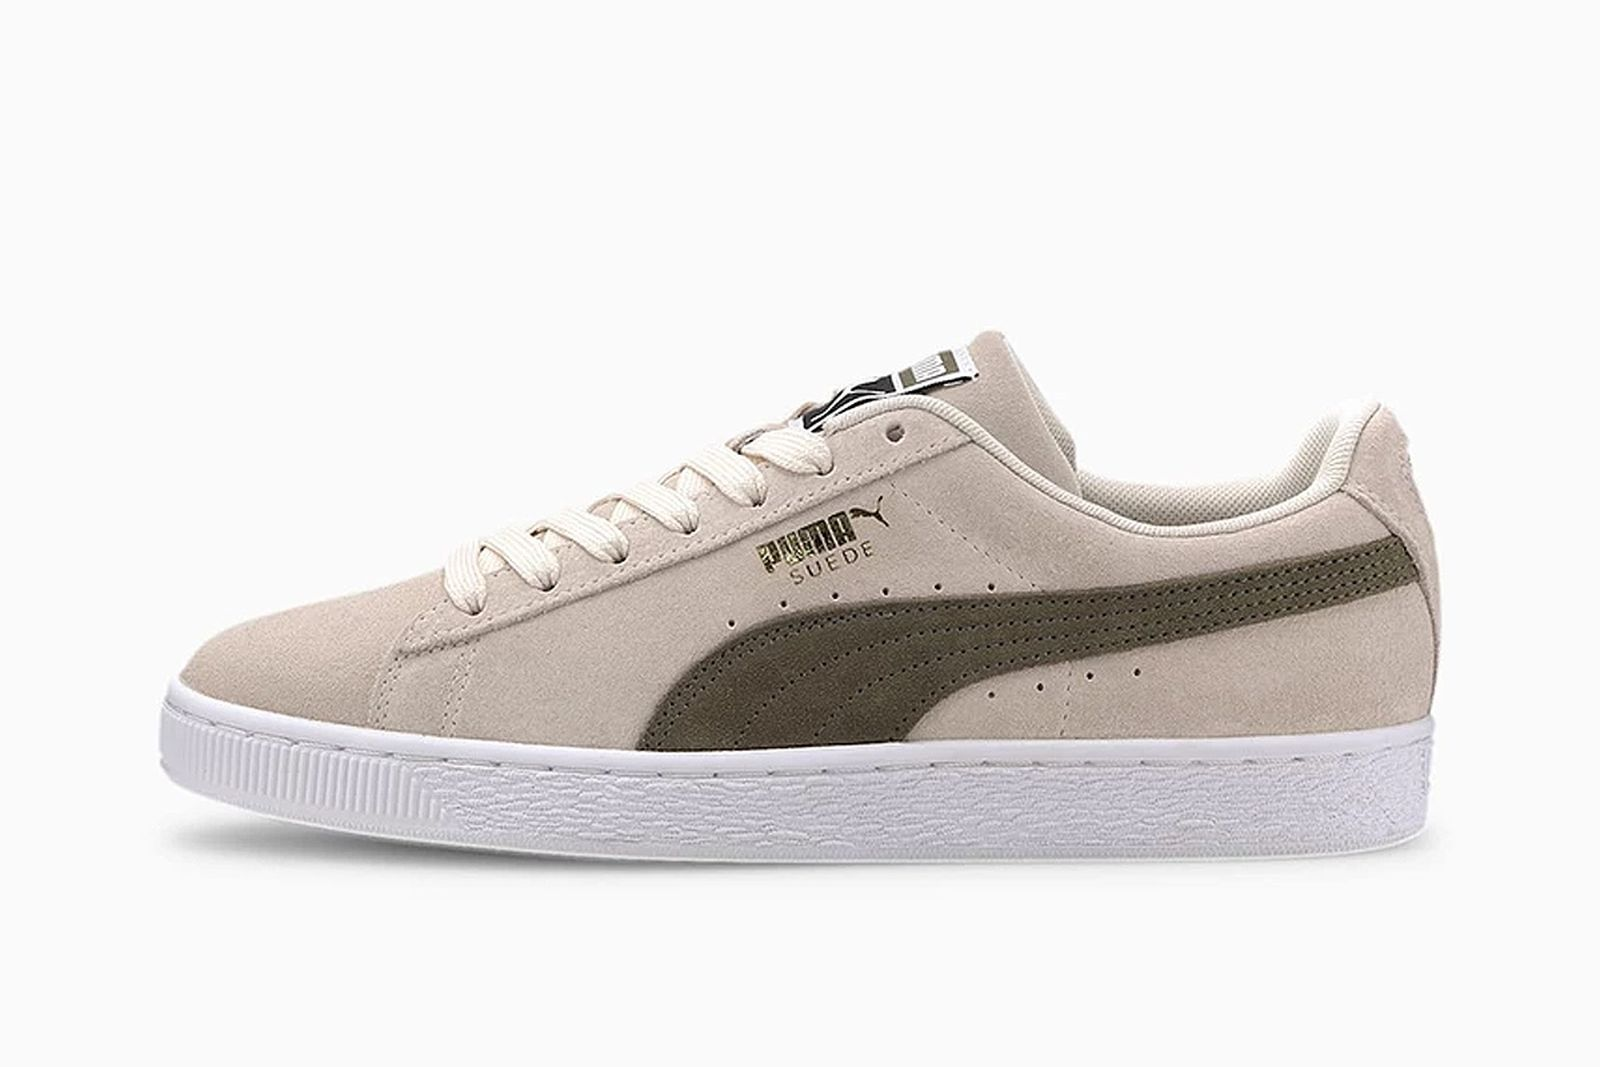 PUMA's Best Sneakers Are Its Classics, Shop Them Here